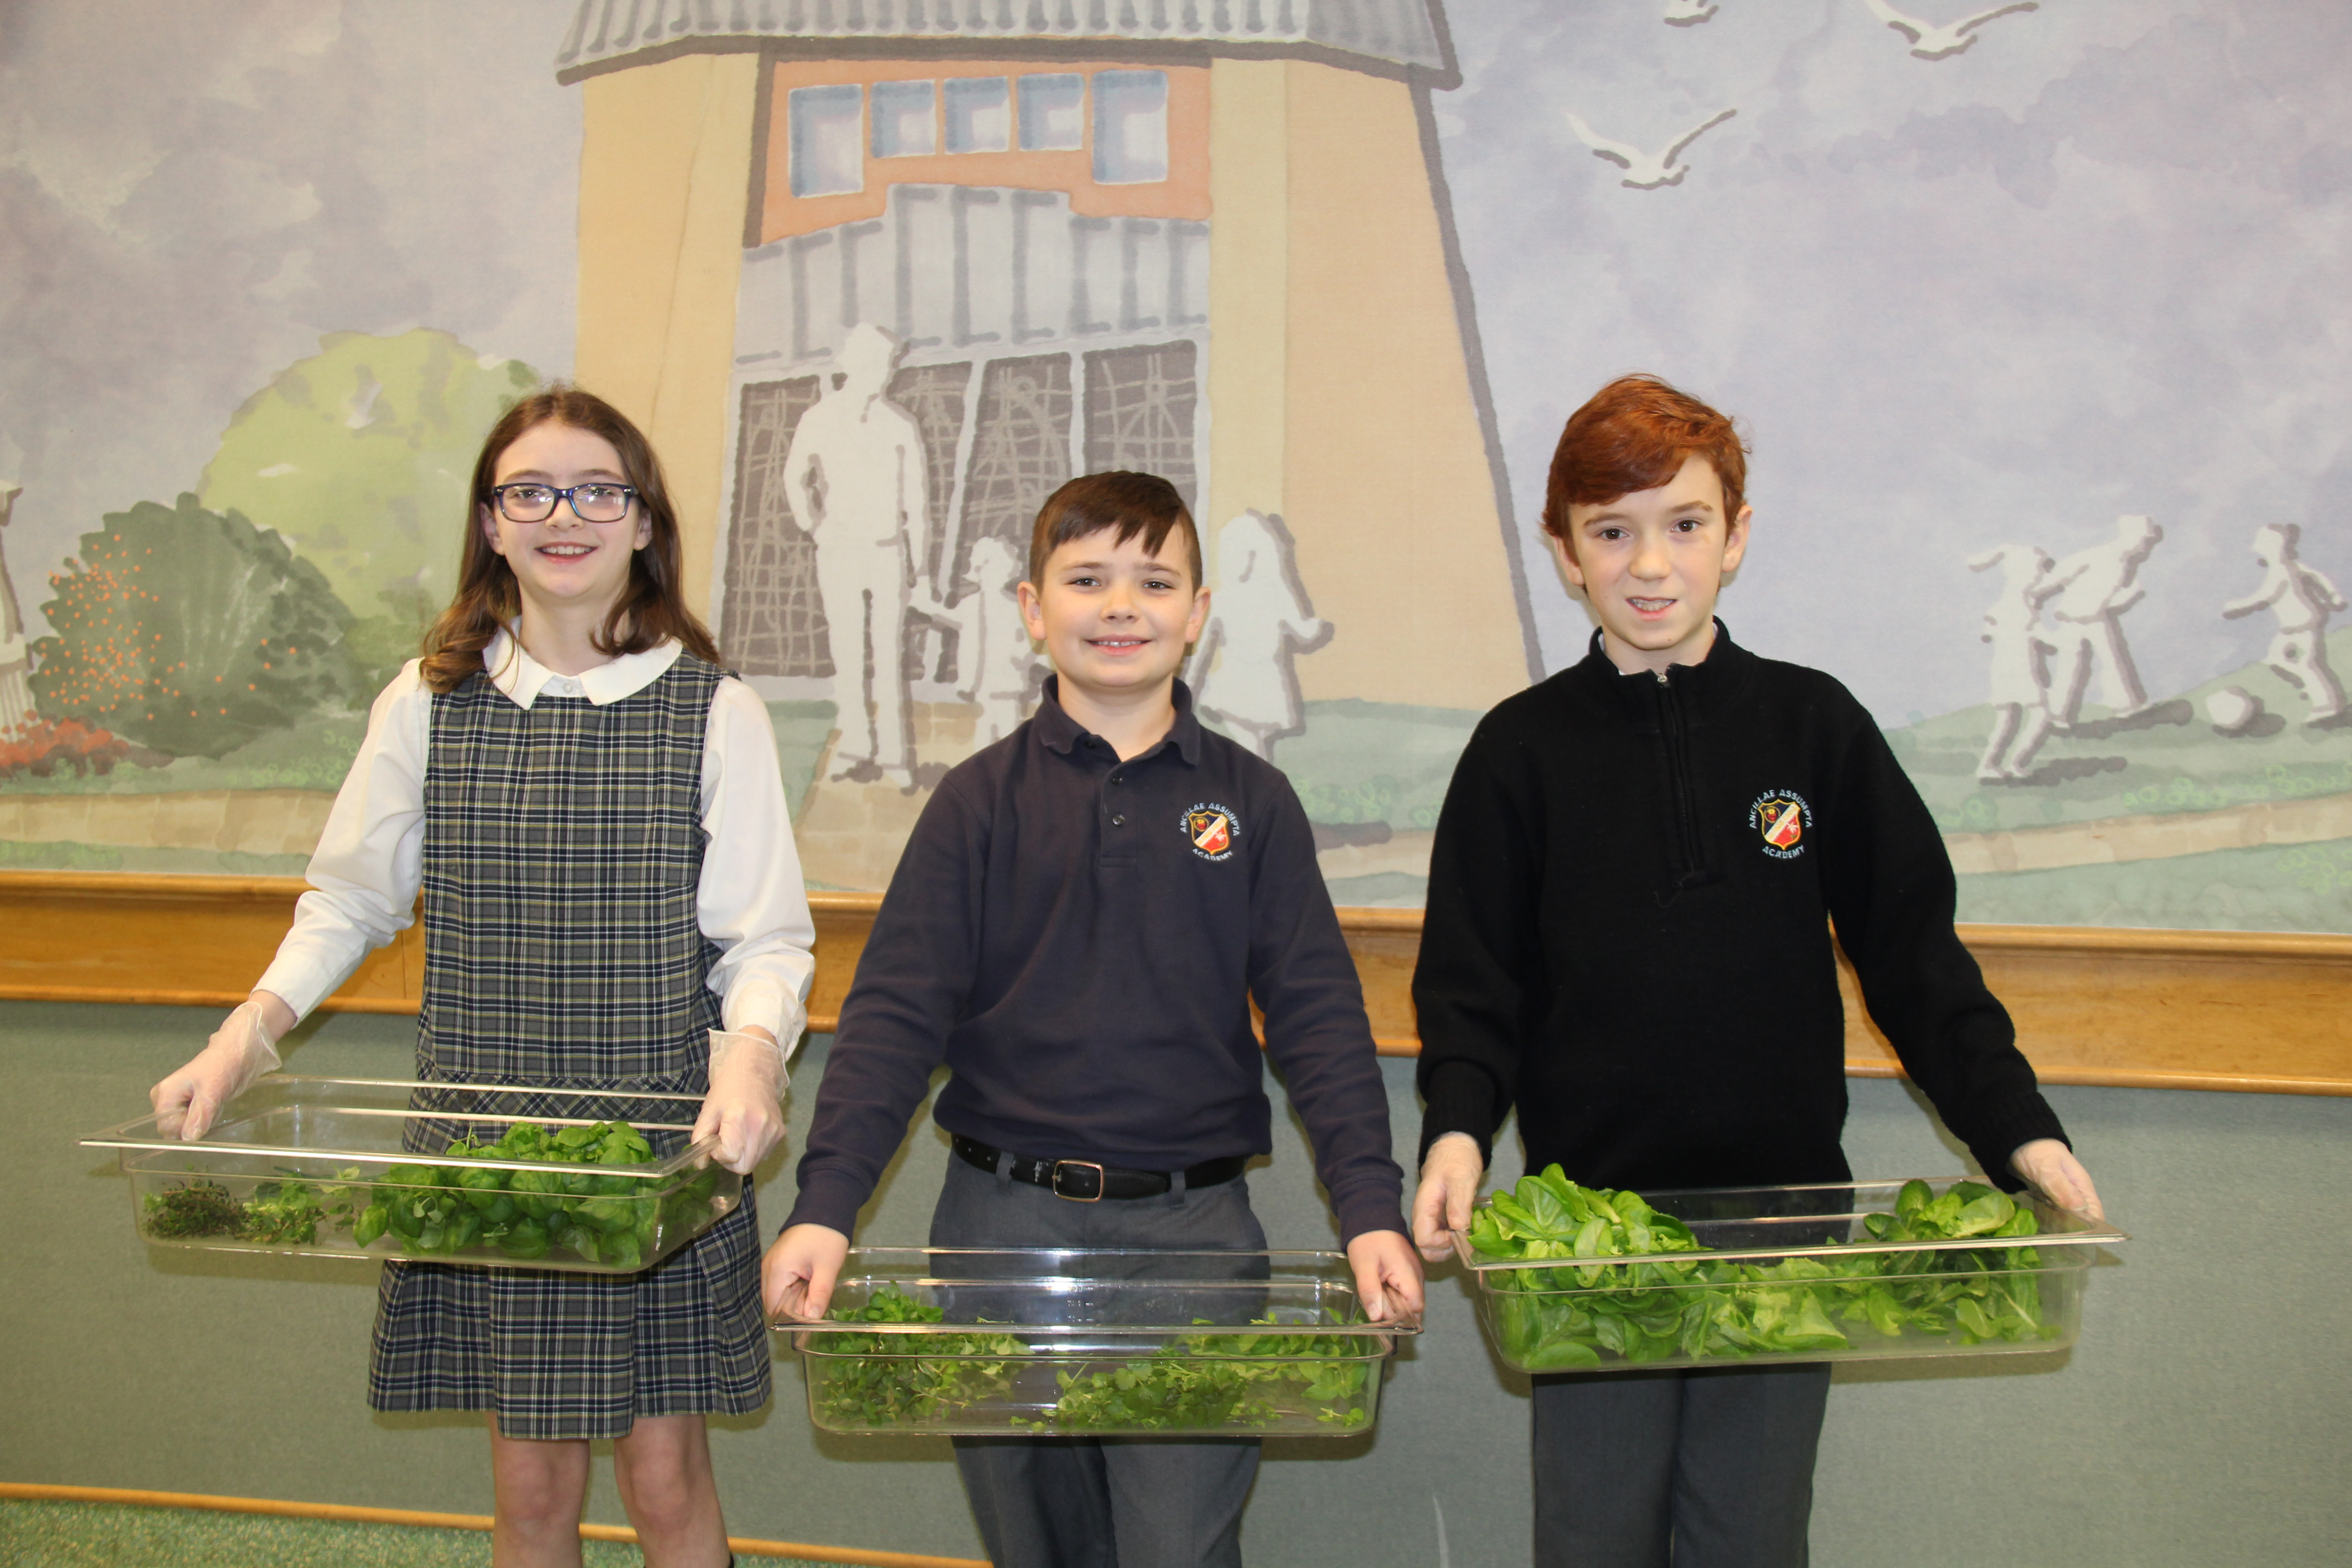 Three students each holding a bin of green produce